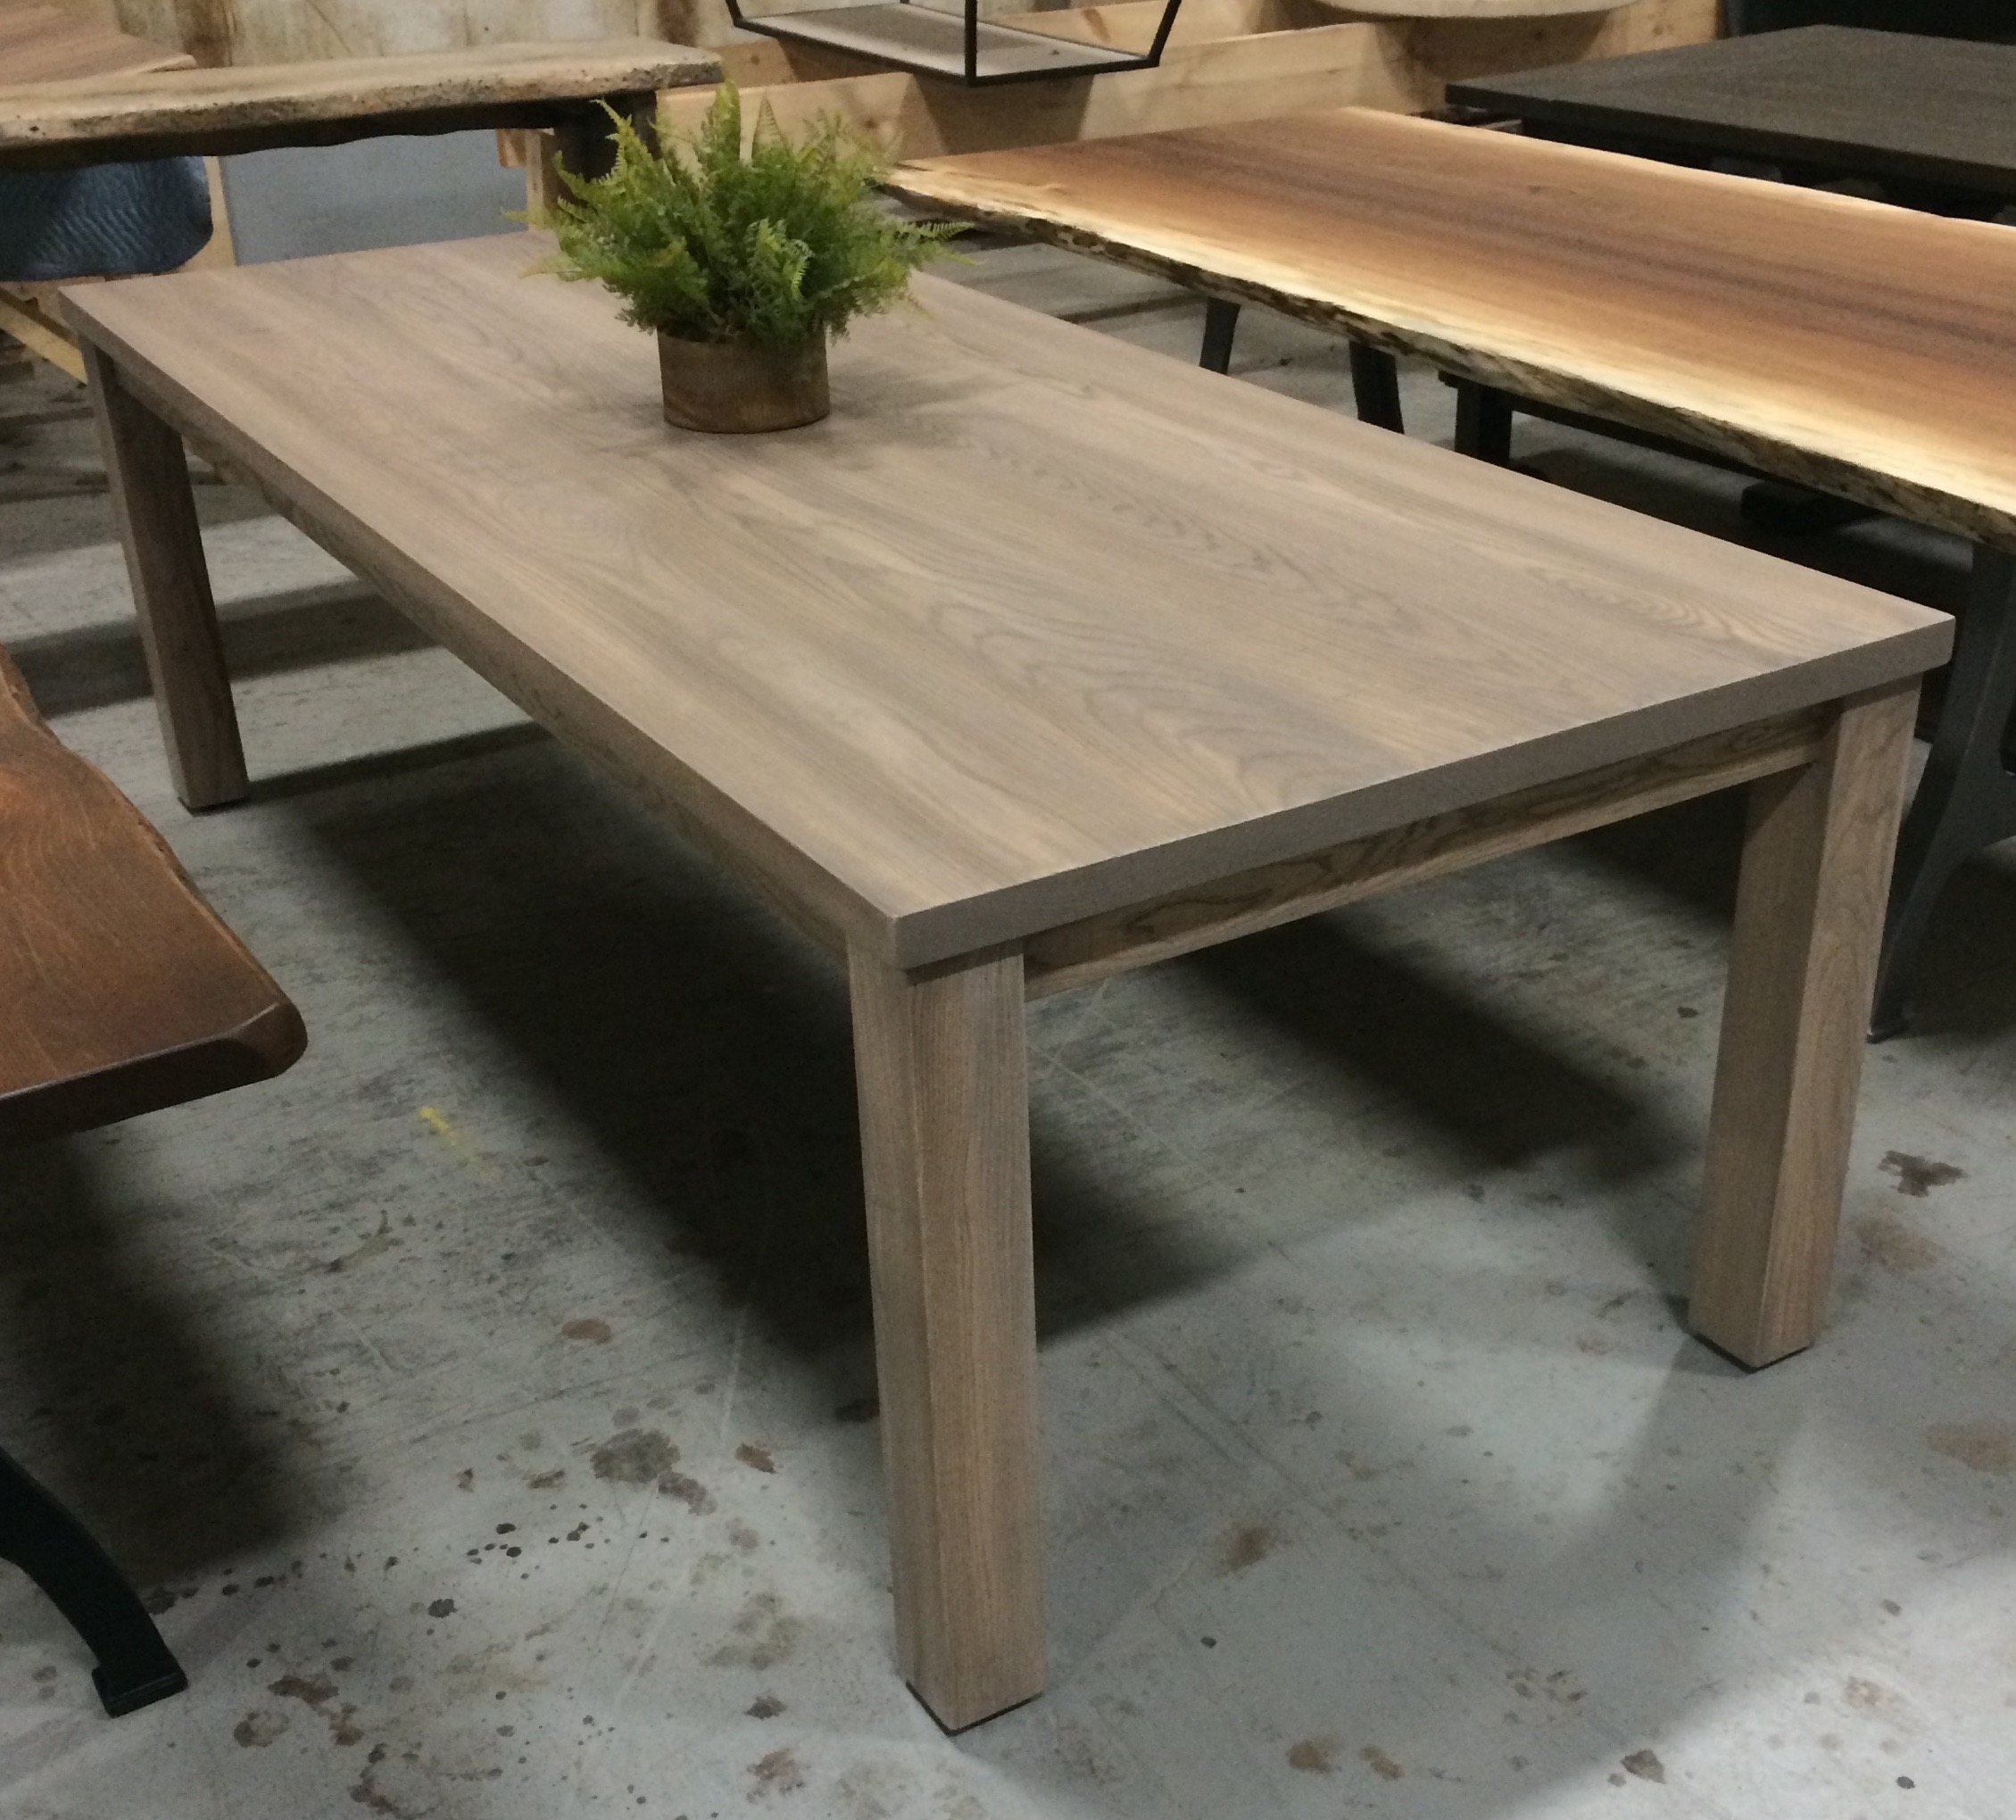 Ash Parsons Table with a Wisteria Stain.